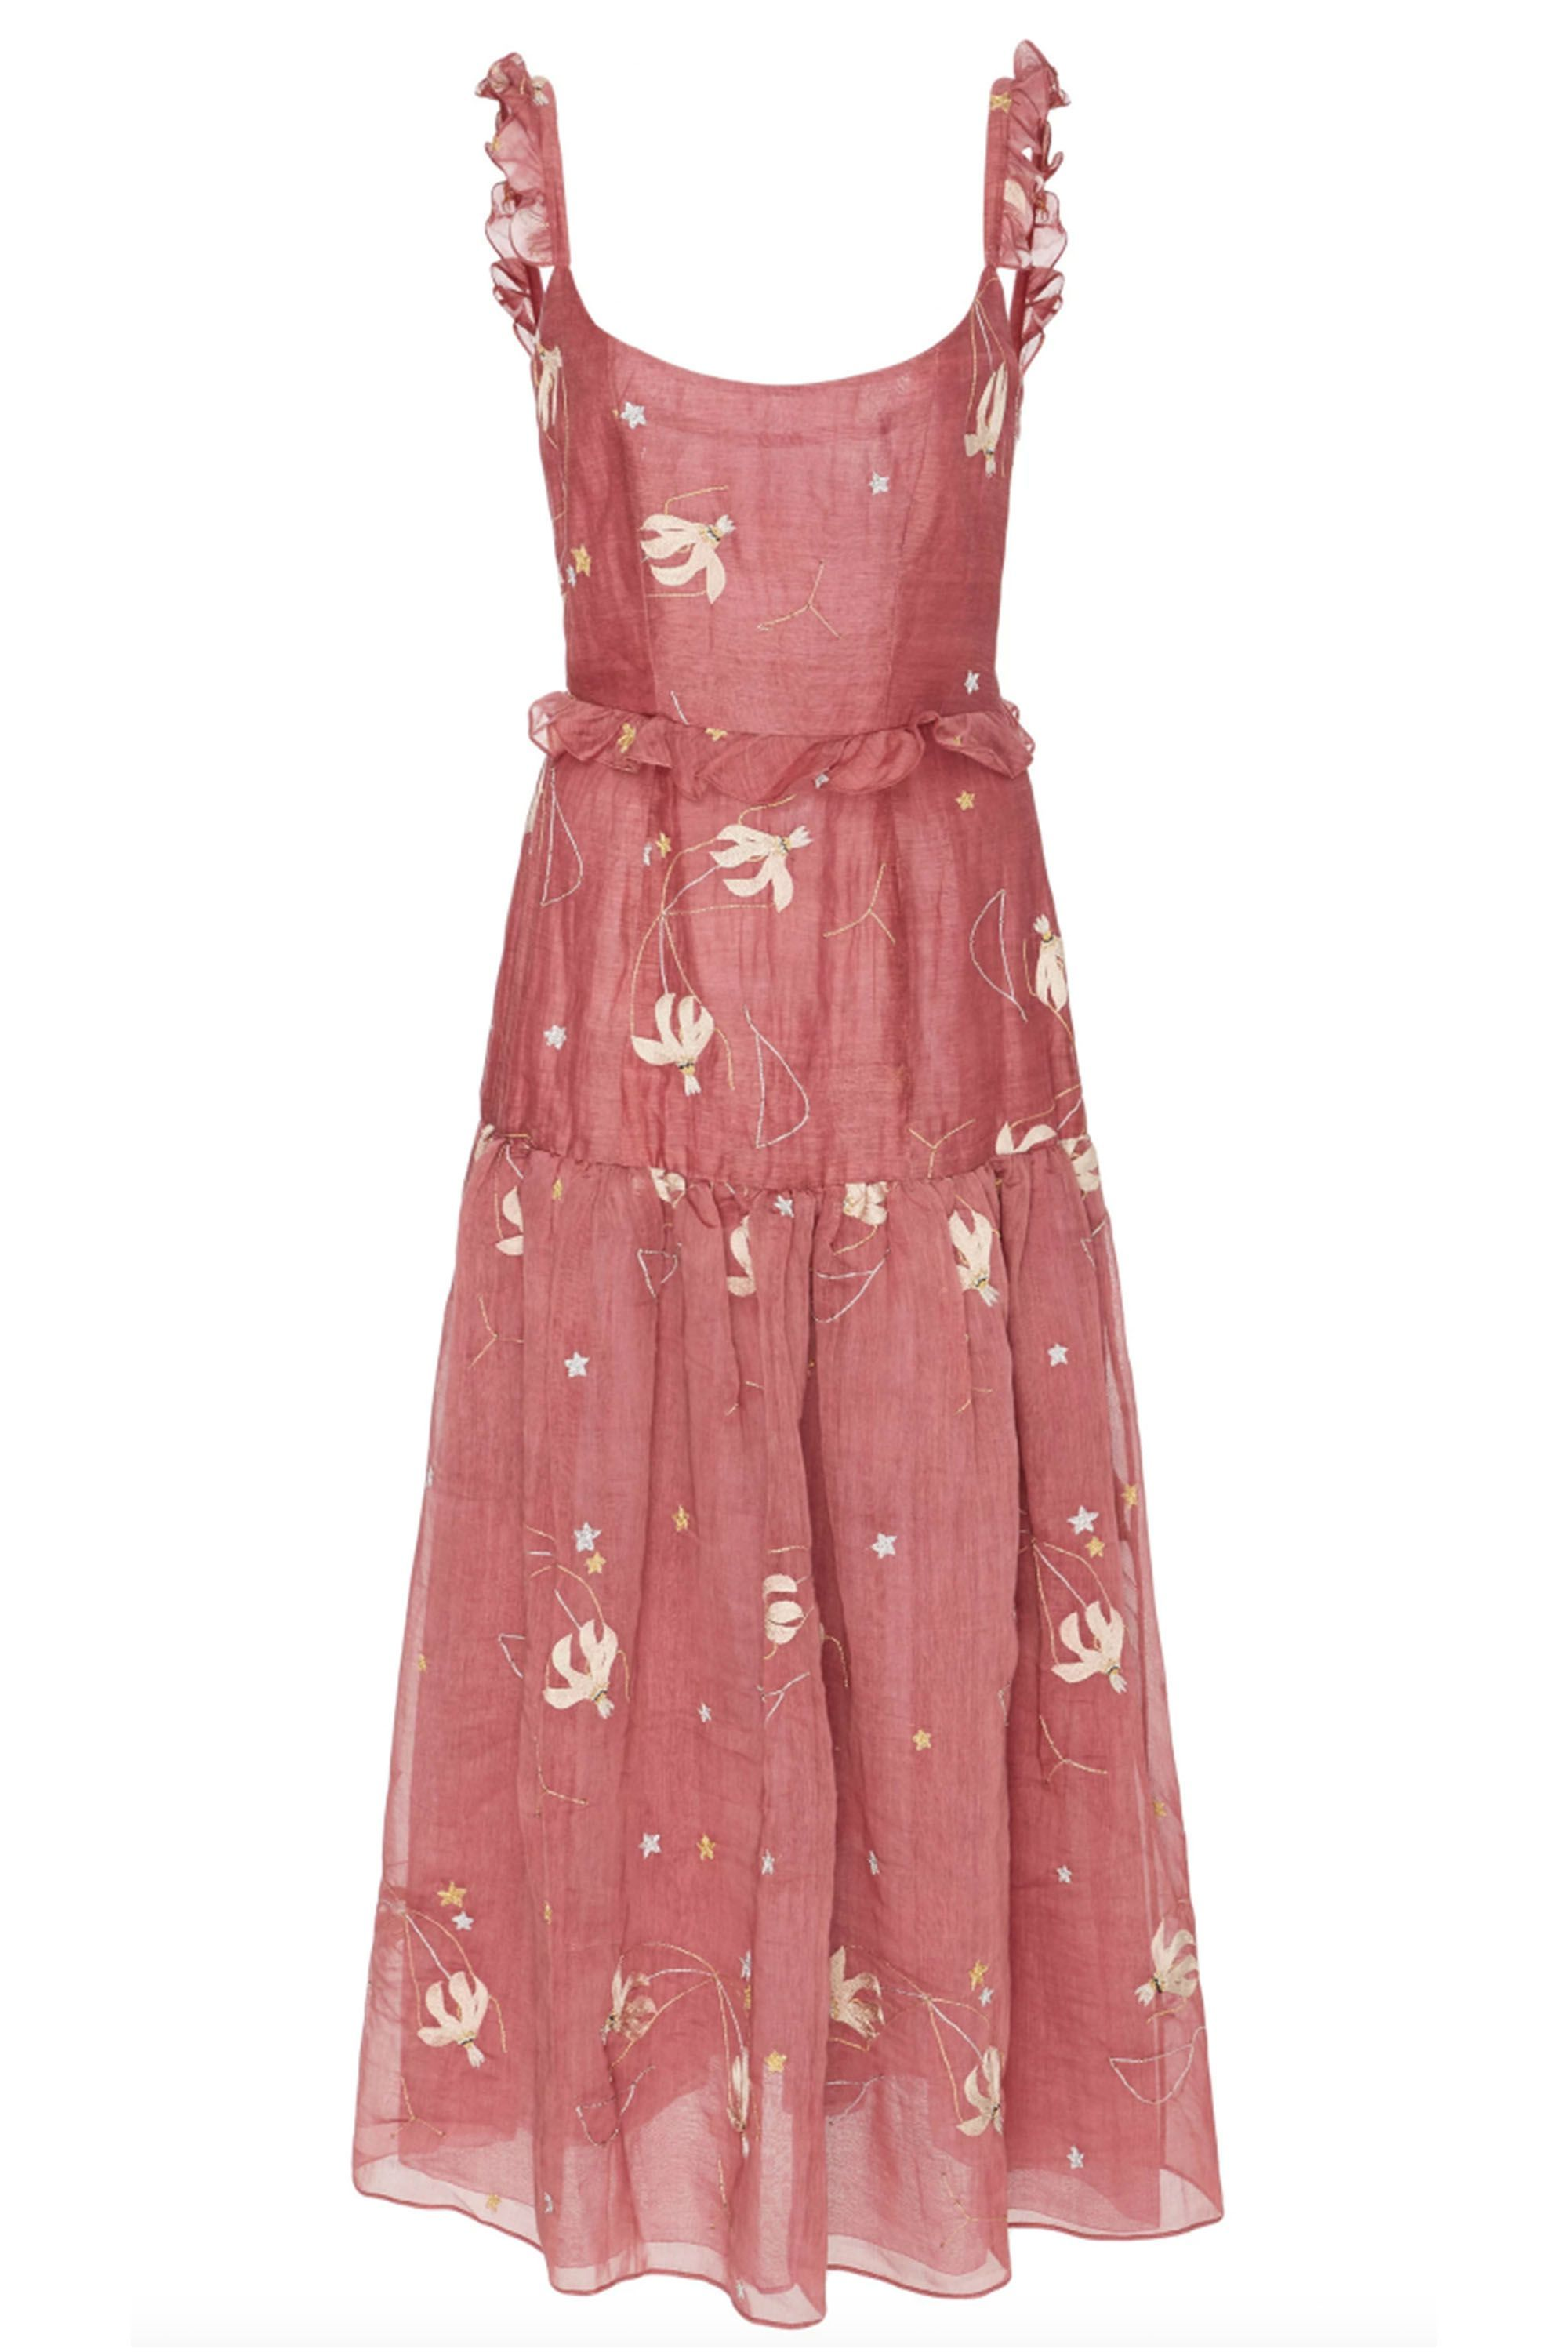 What to Wear to a Summer 2018 Wedding - 15 Wedding Guest Dresses to ...